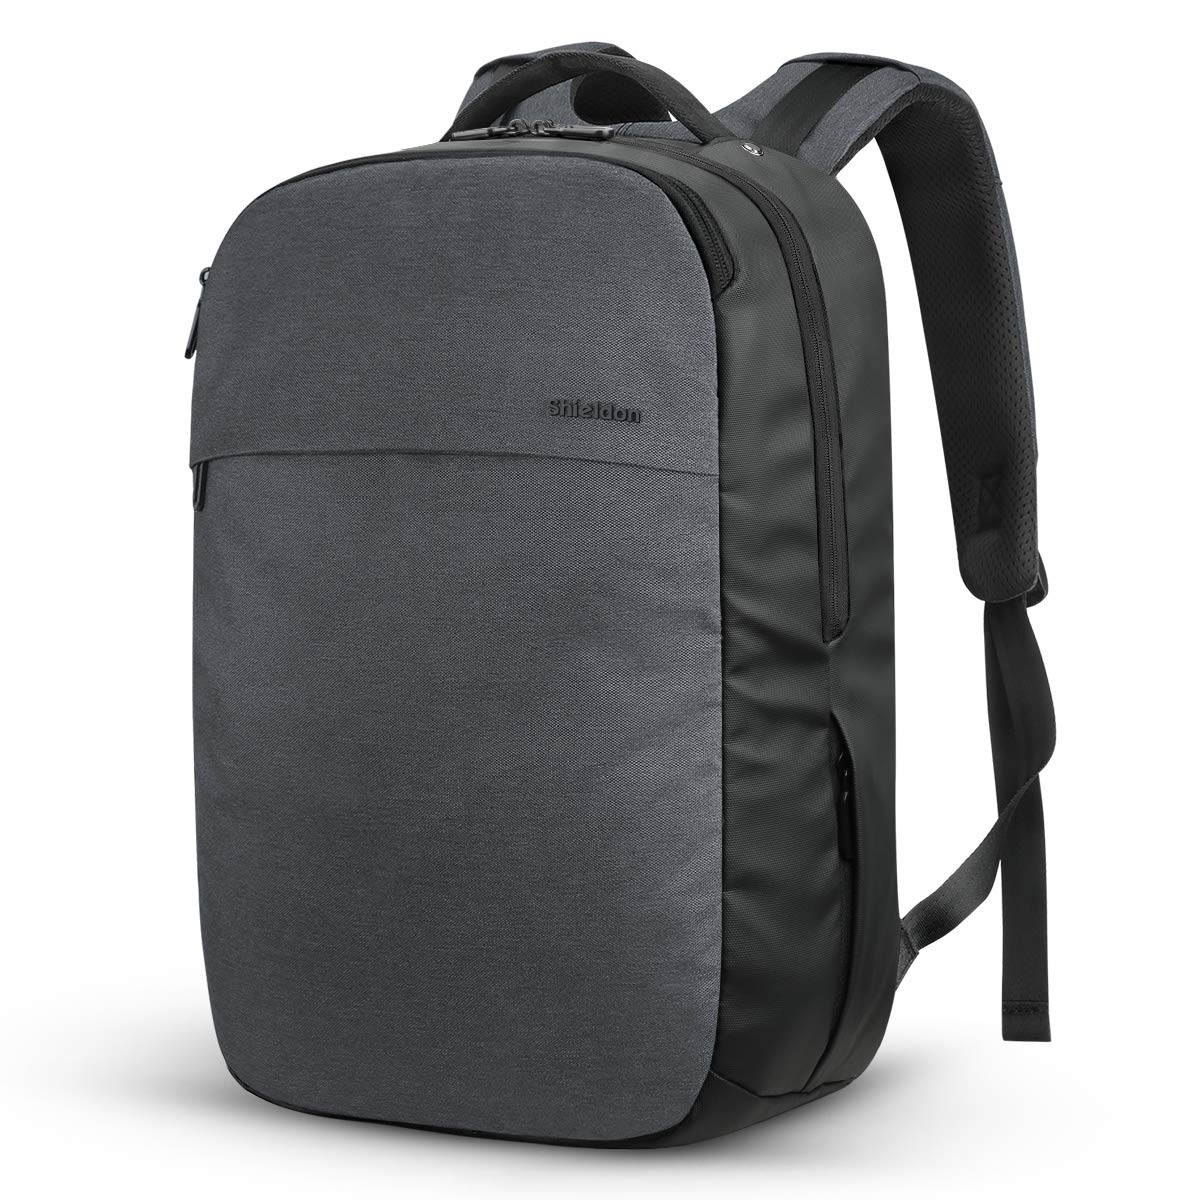 Shieldon Travel Laptop Backpack